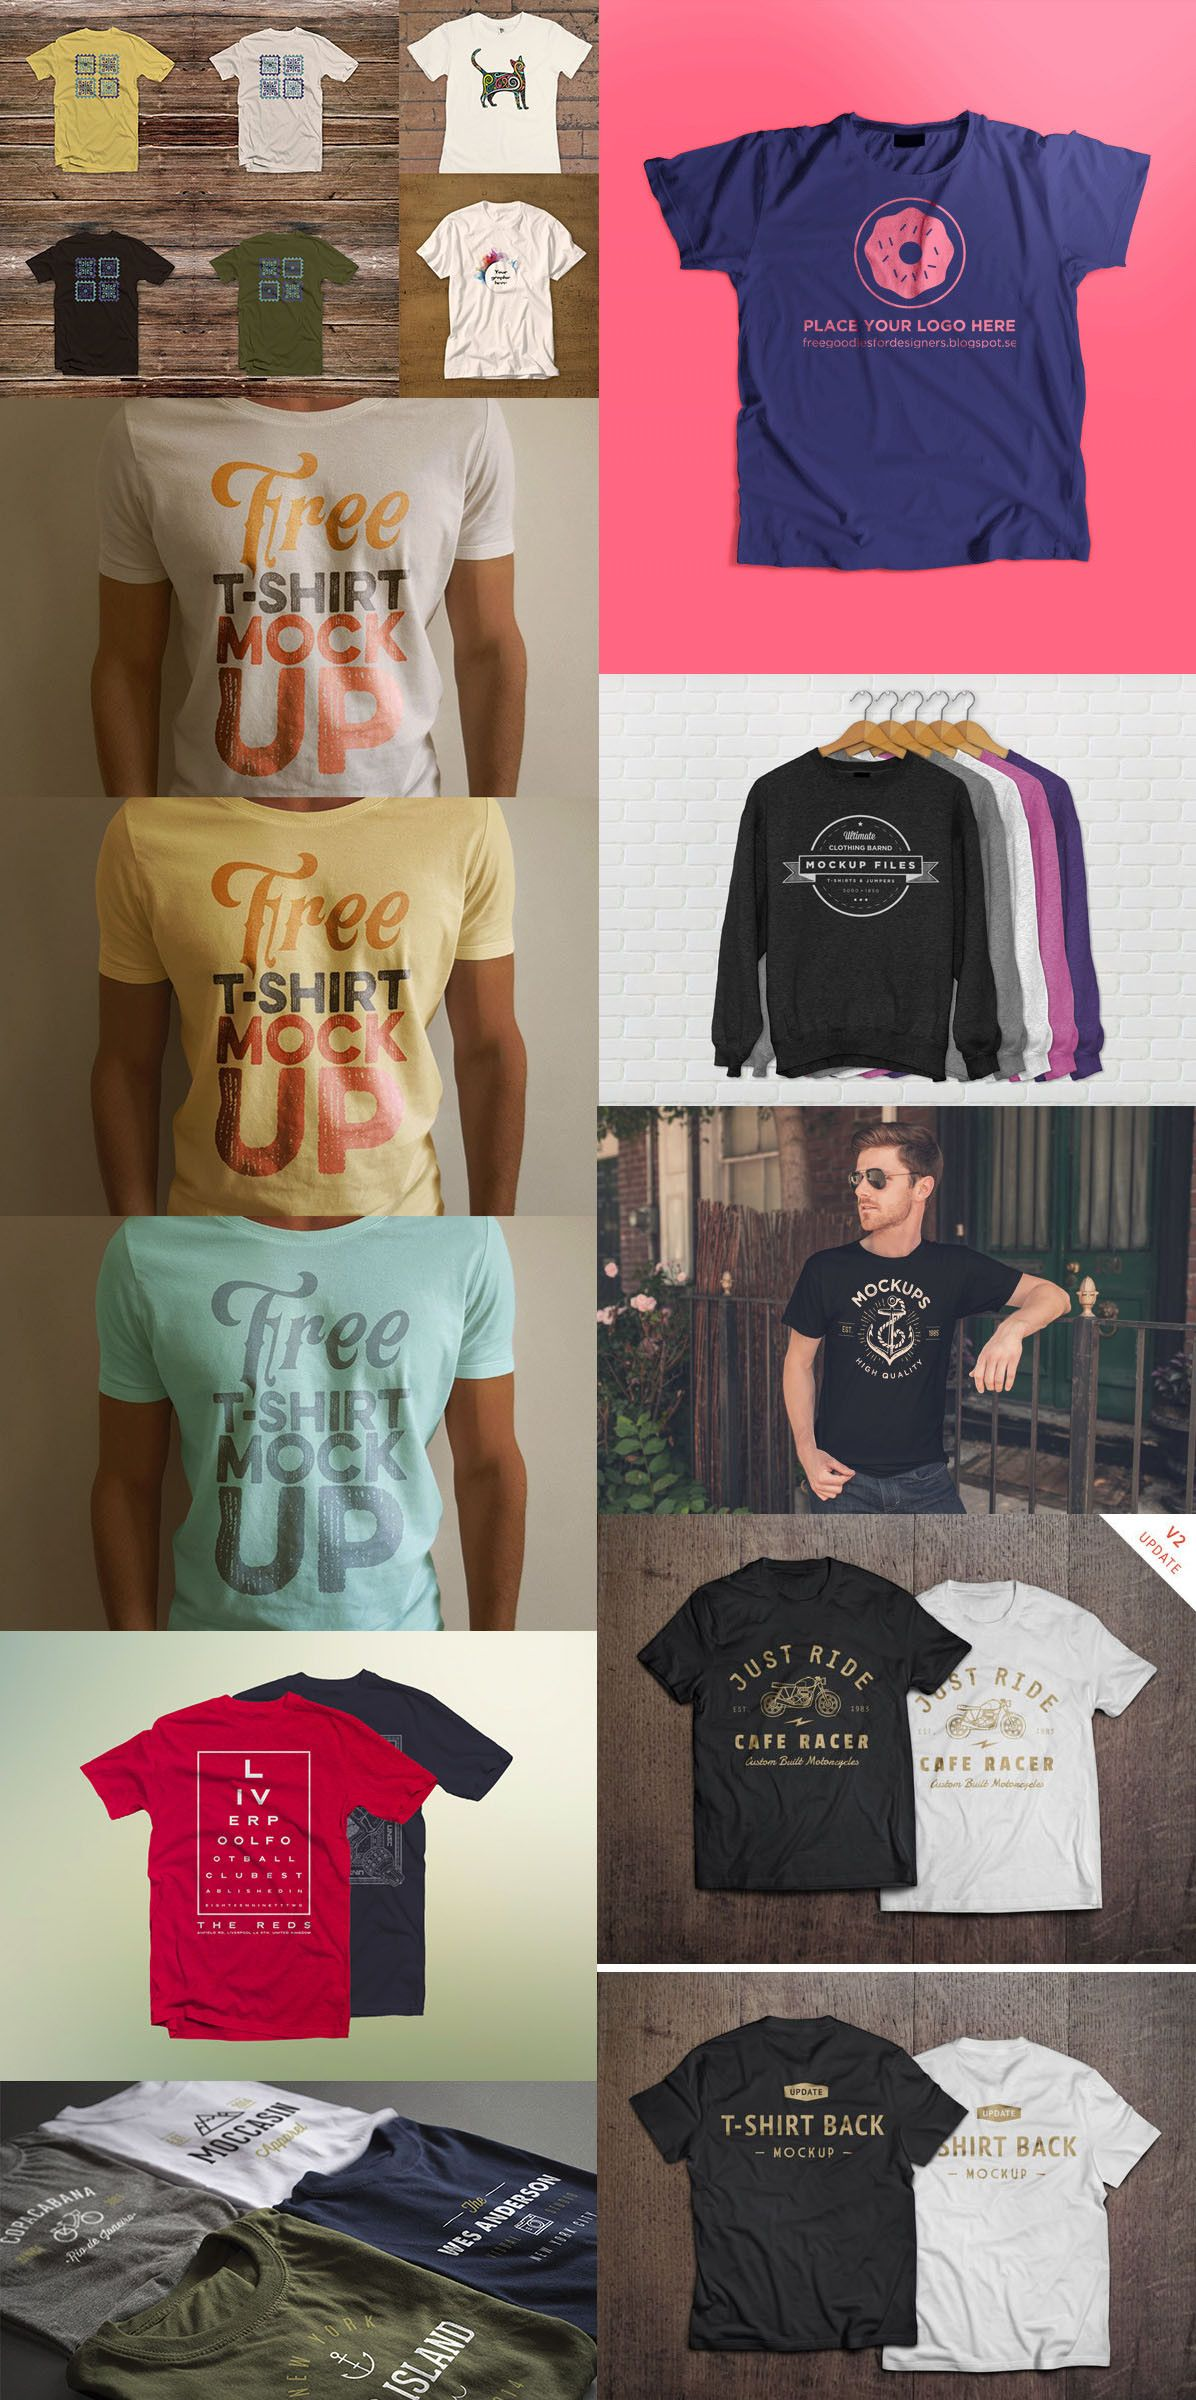 Download 51 Awesome Free T Shirt Mock Ups Psd Free T Shirt Design Clothing Mockup Tshirt Mockup Free